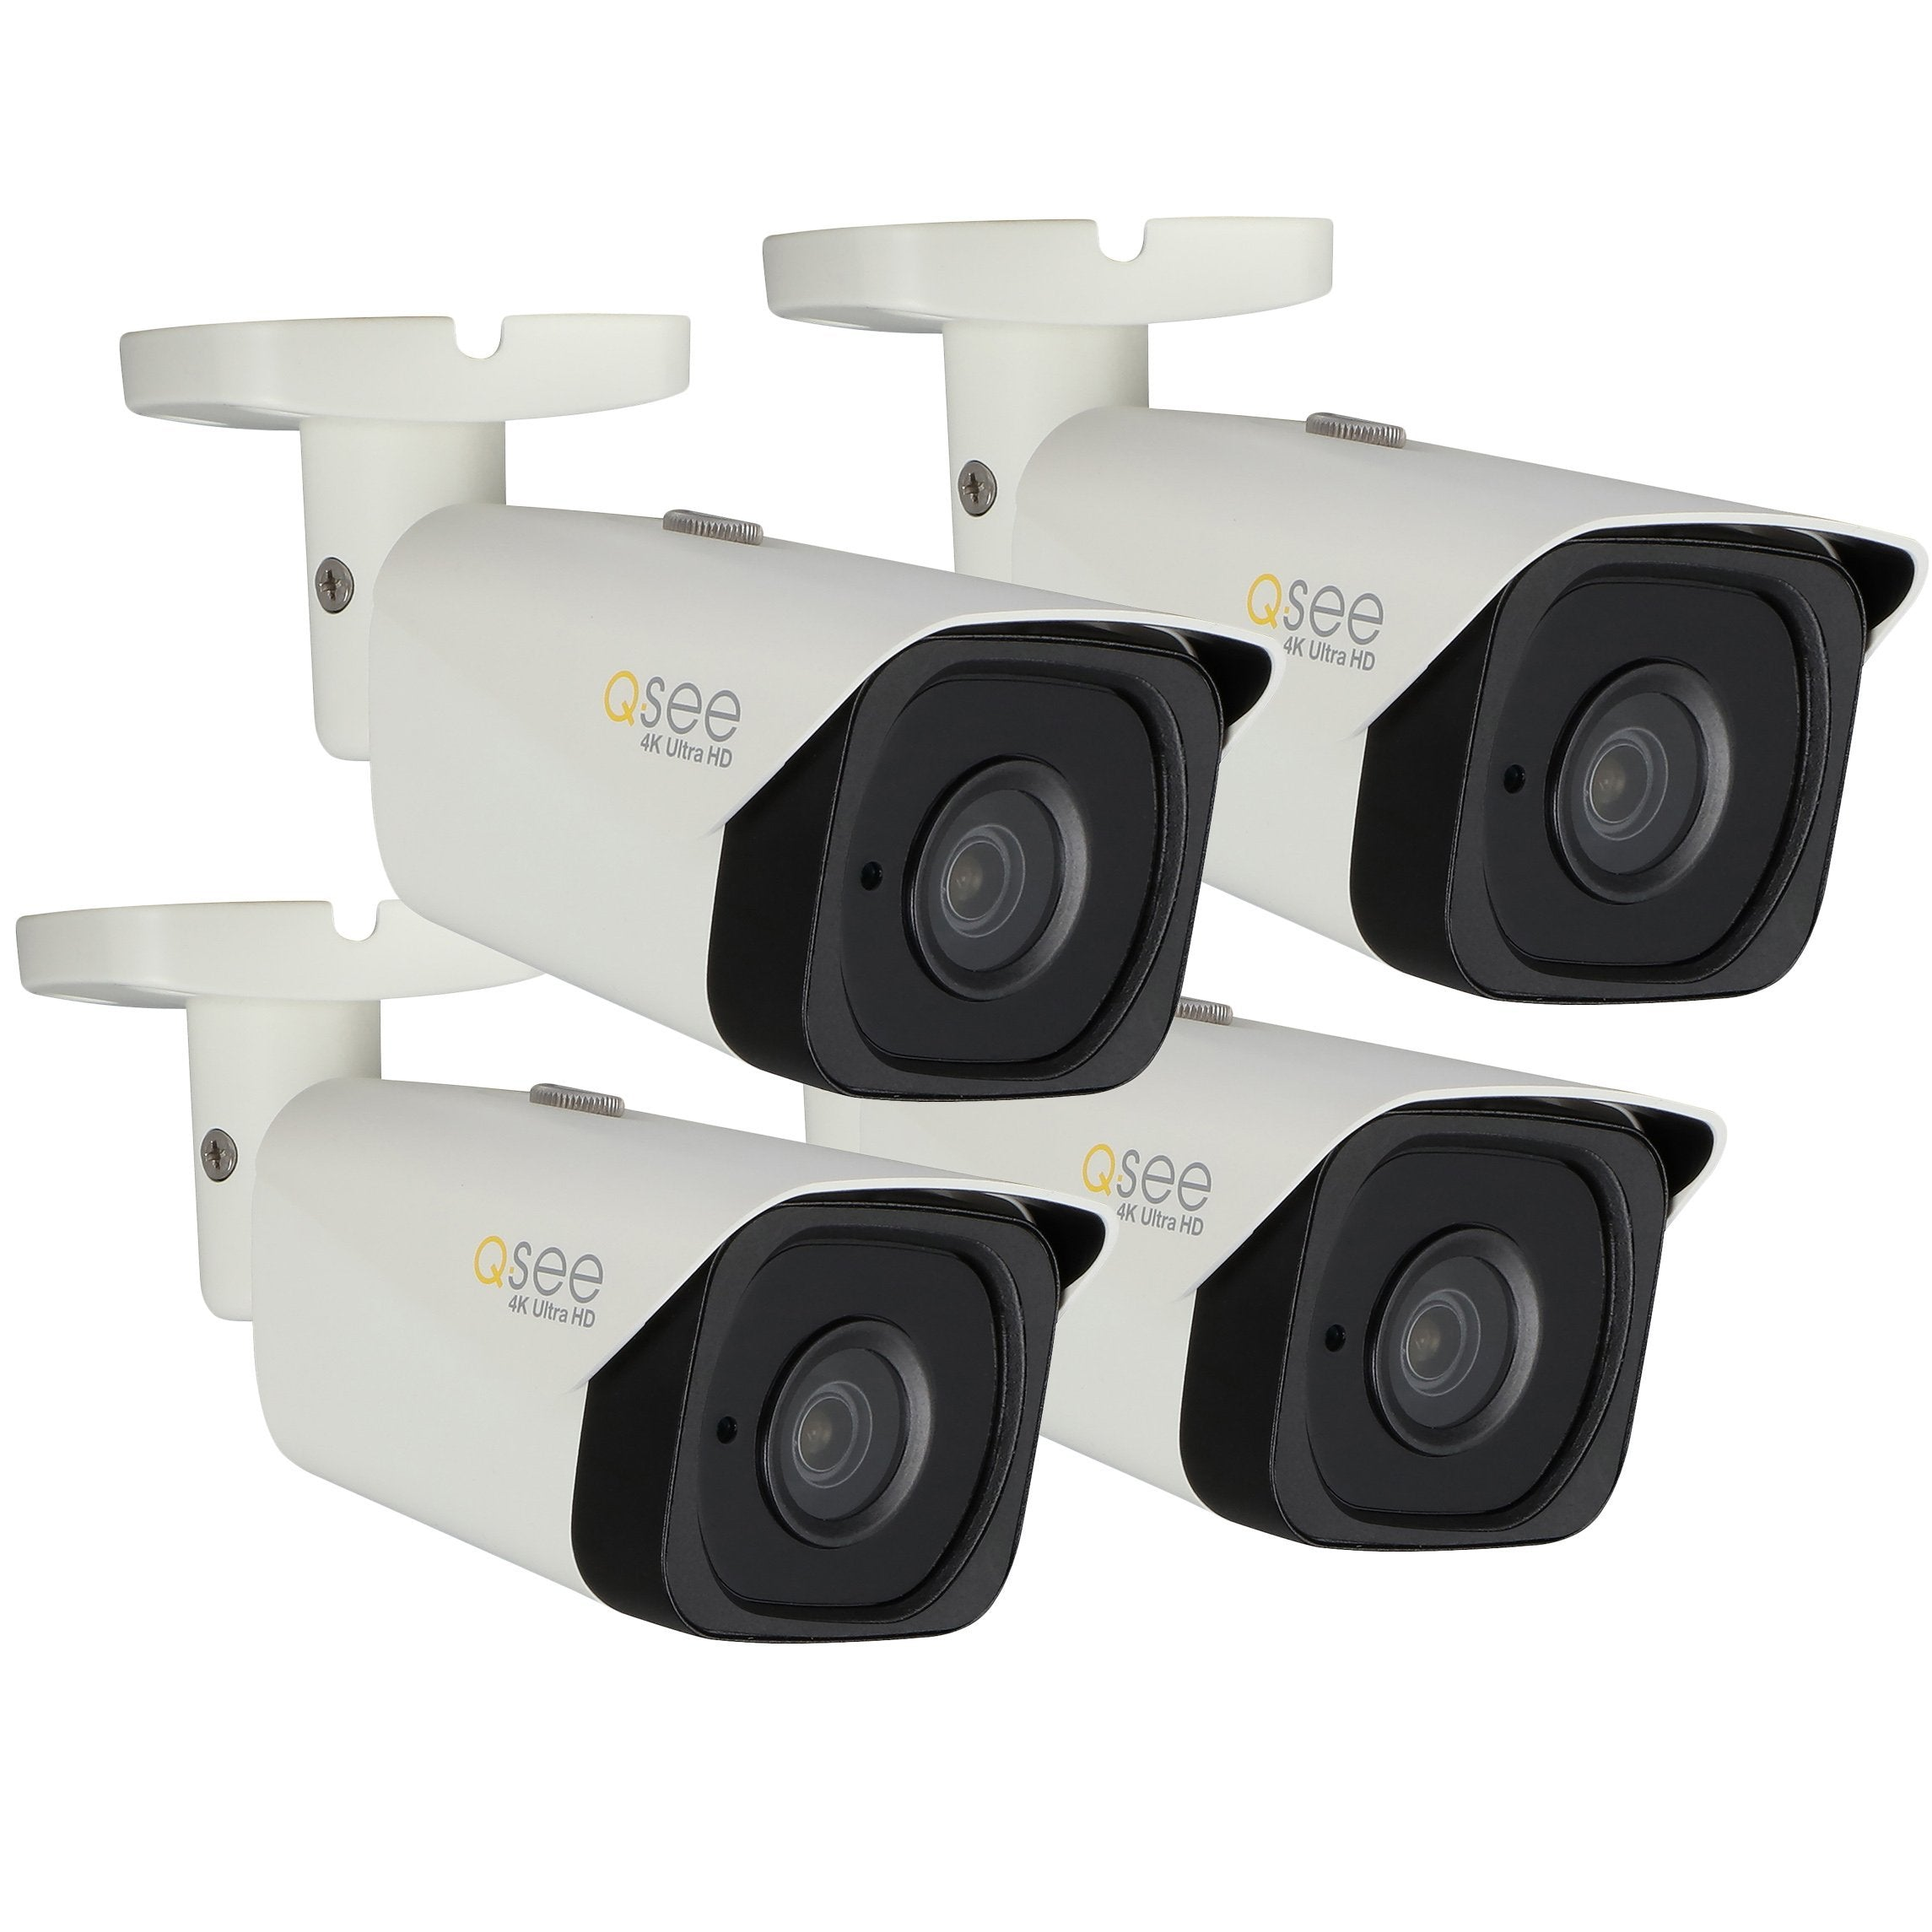 Q-See IP HD Cameras 4K IP HD H.265 Bullet Camera-Four Pack (QCN8090B-4)